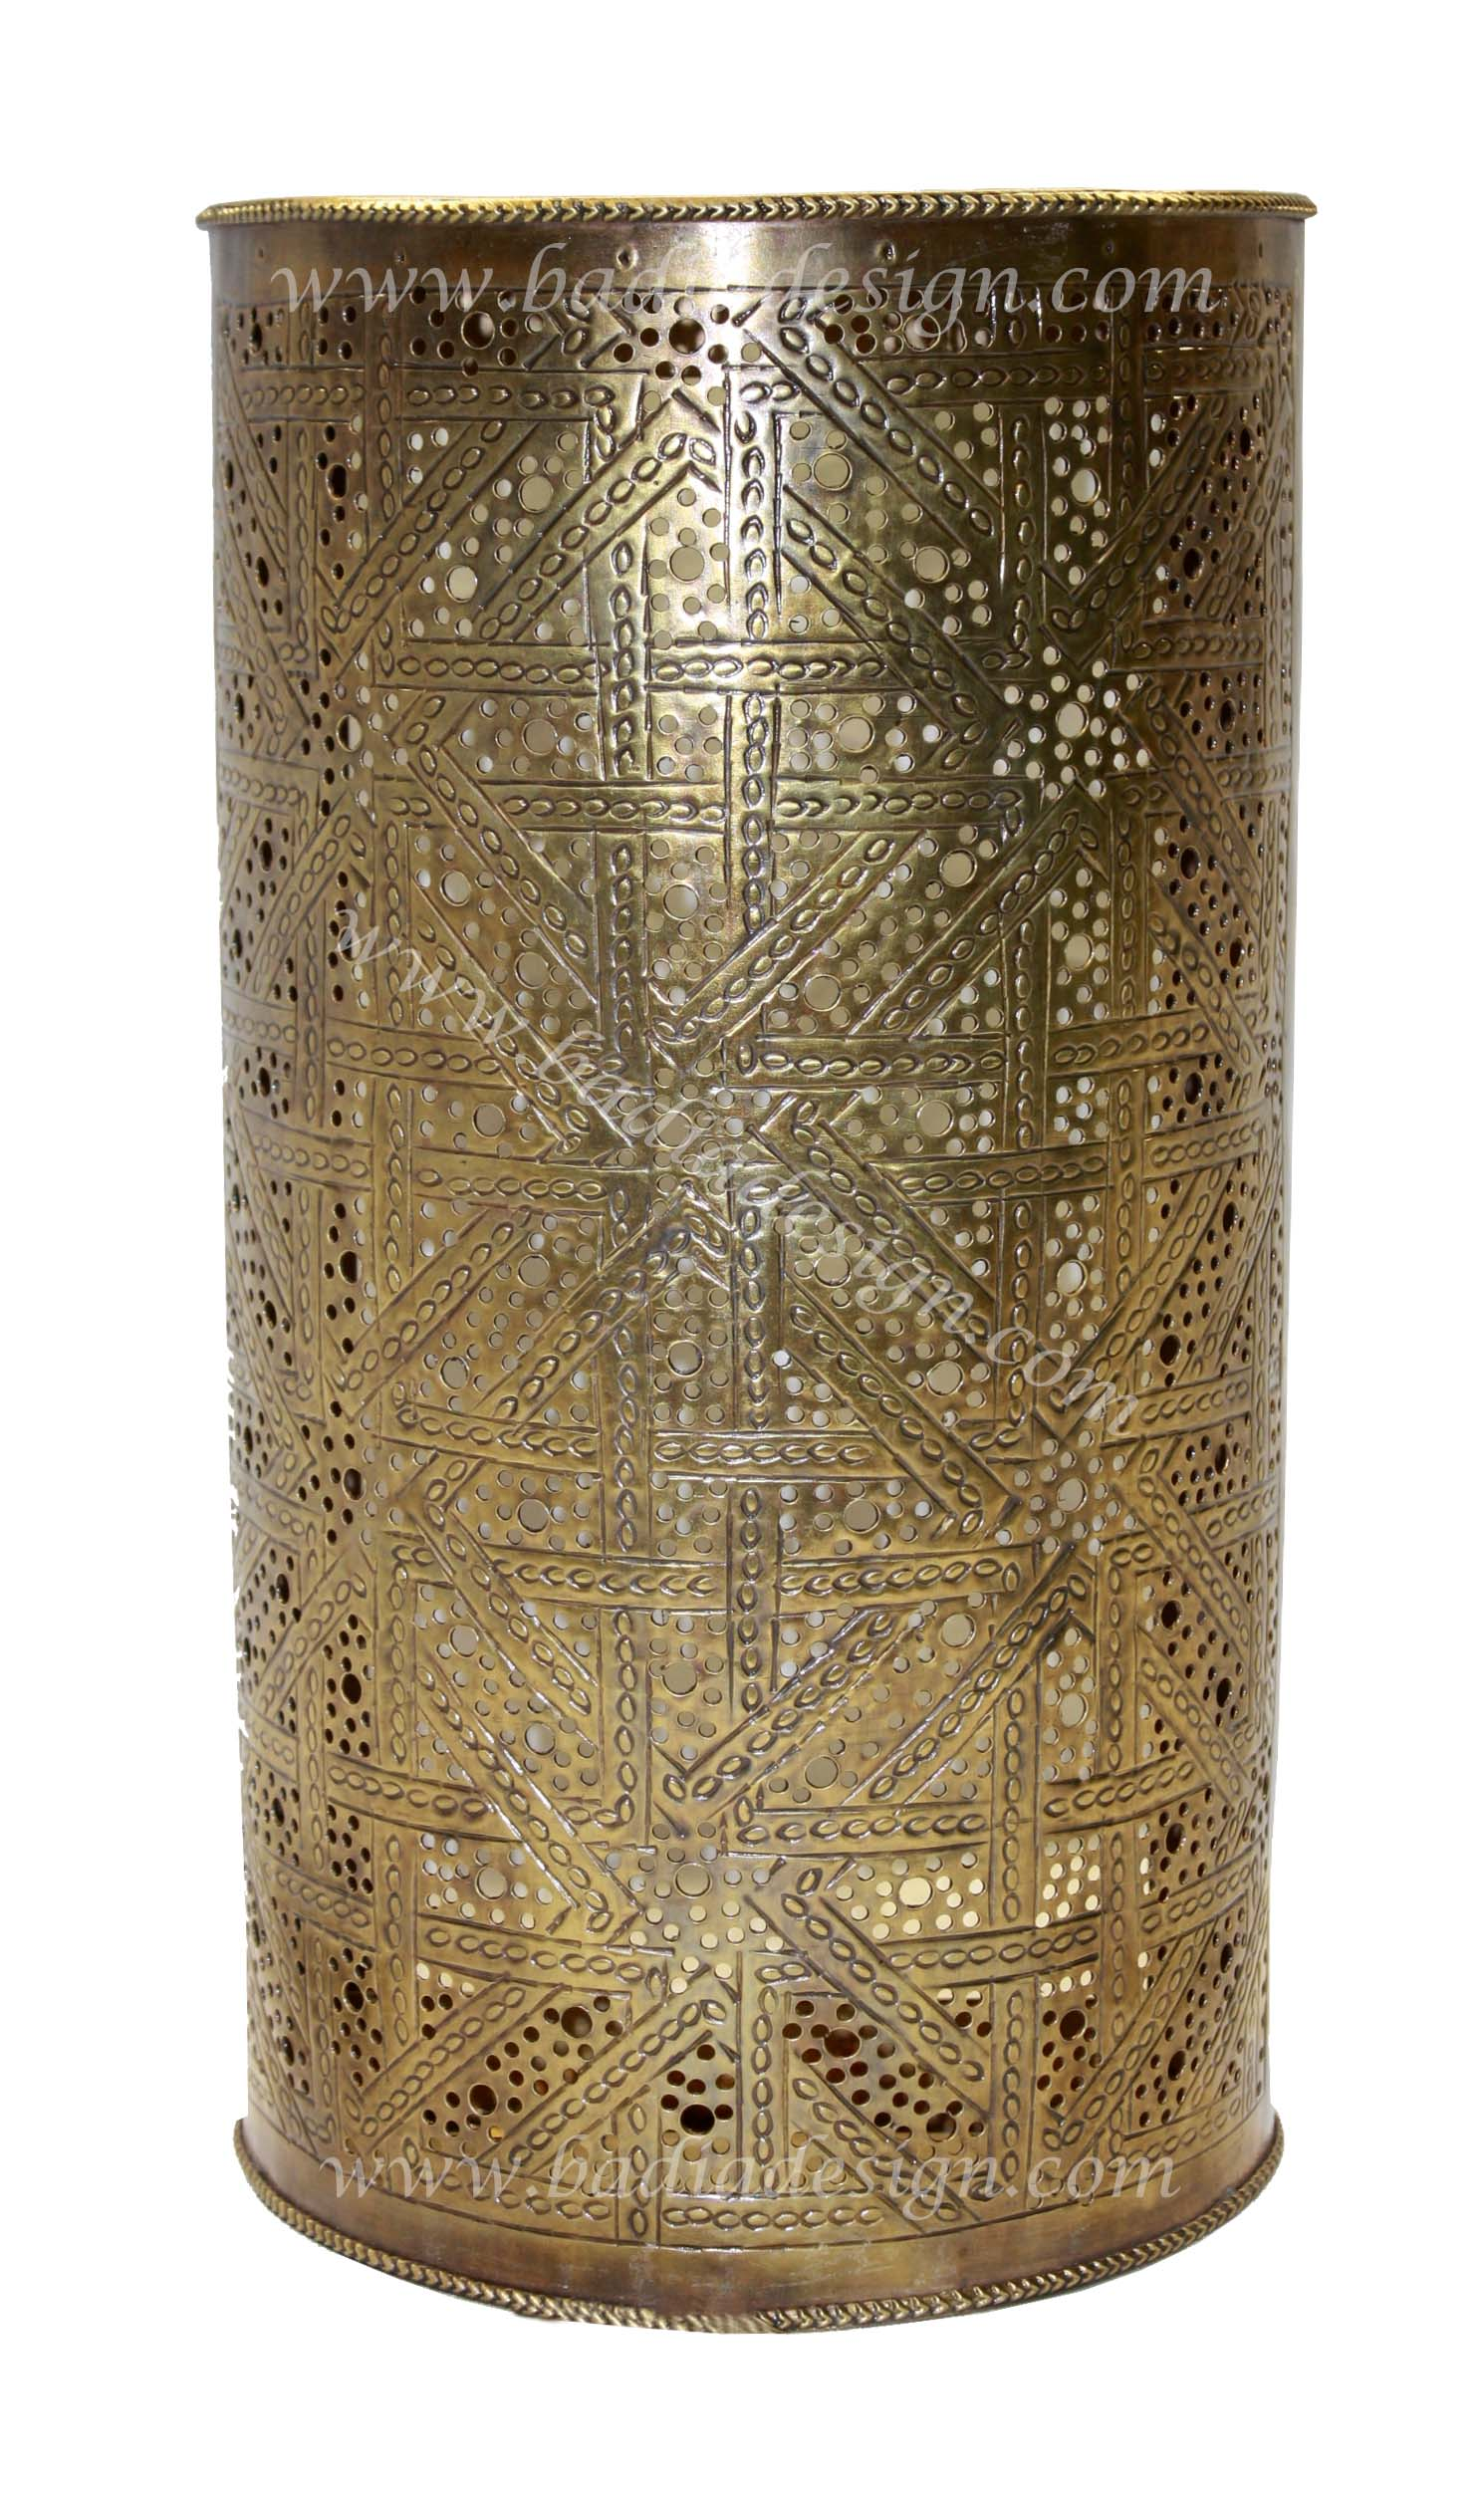 Moroccan Brass Wall Lights : Moroccan Brass Wall Sconce from Badia Design Inc.